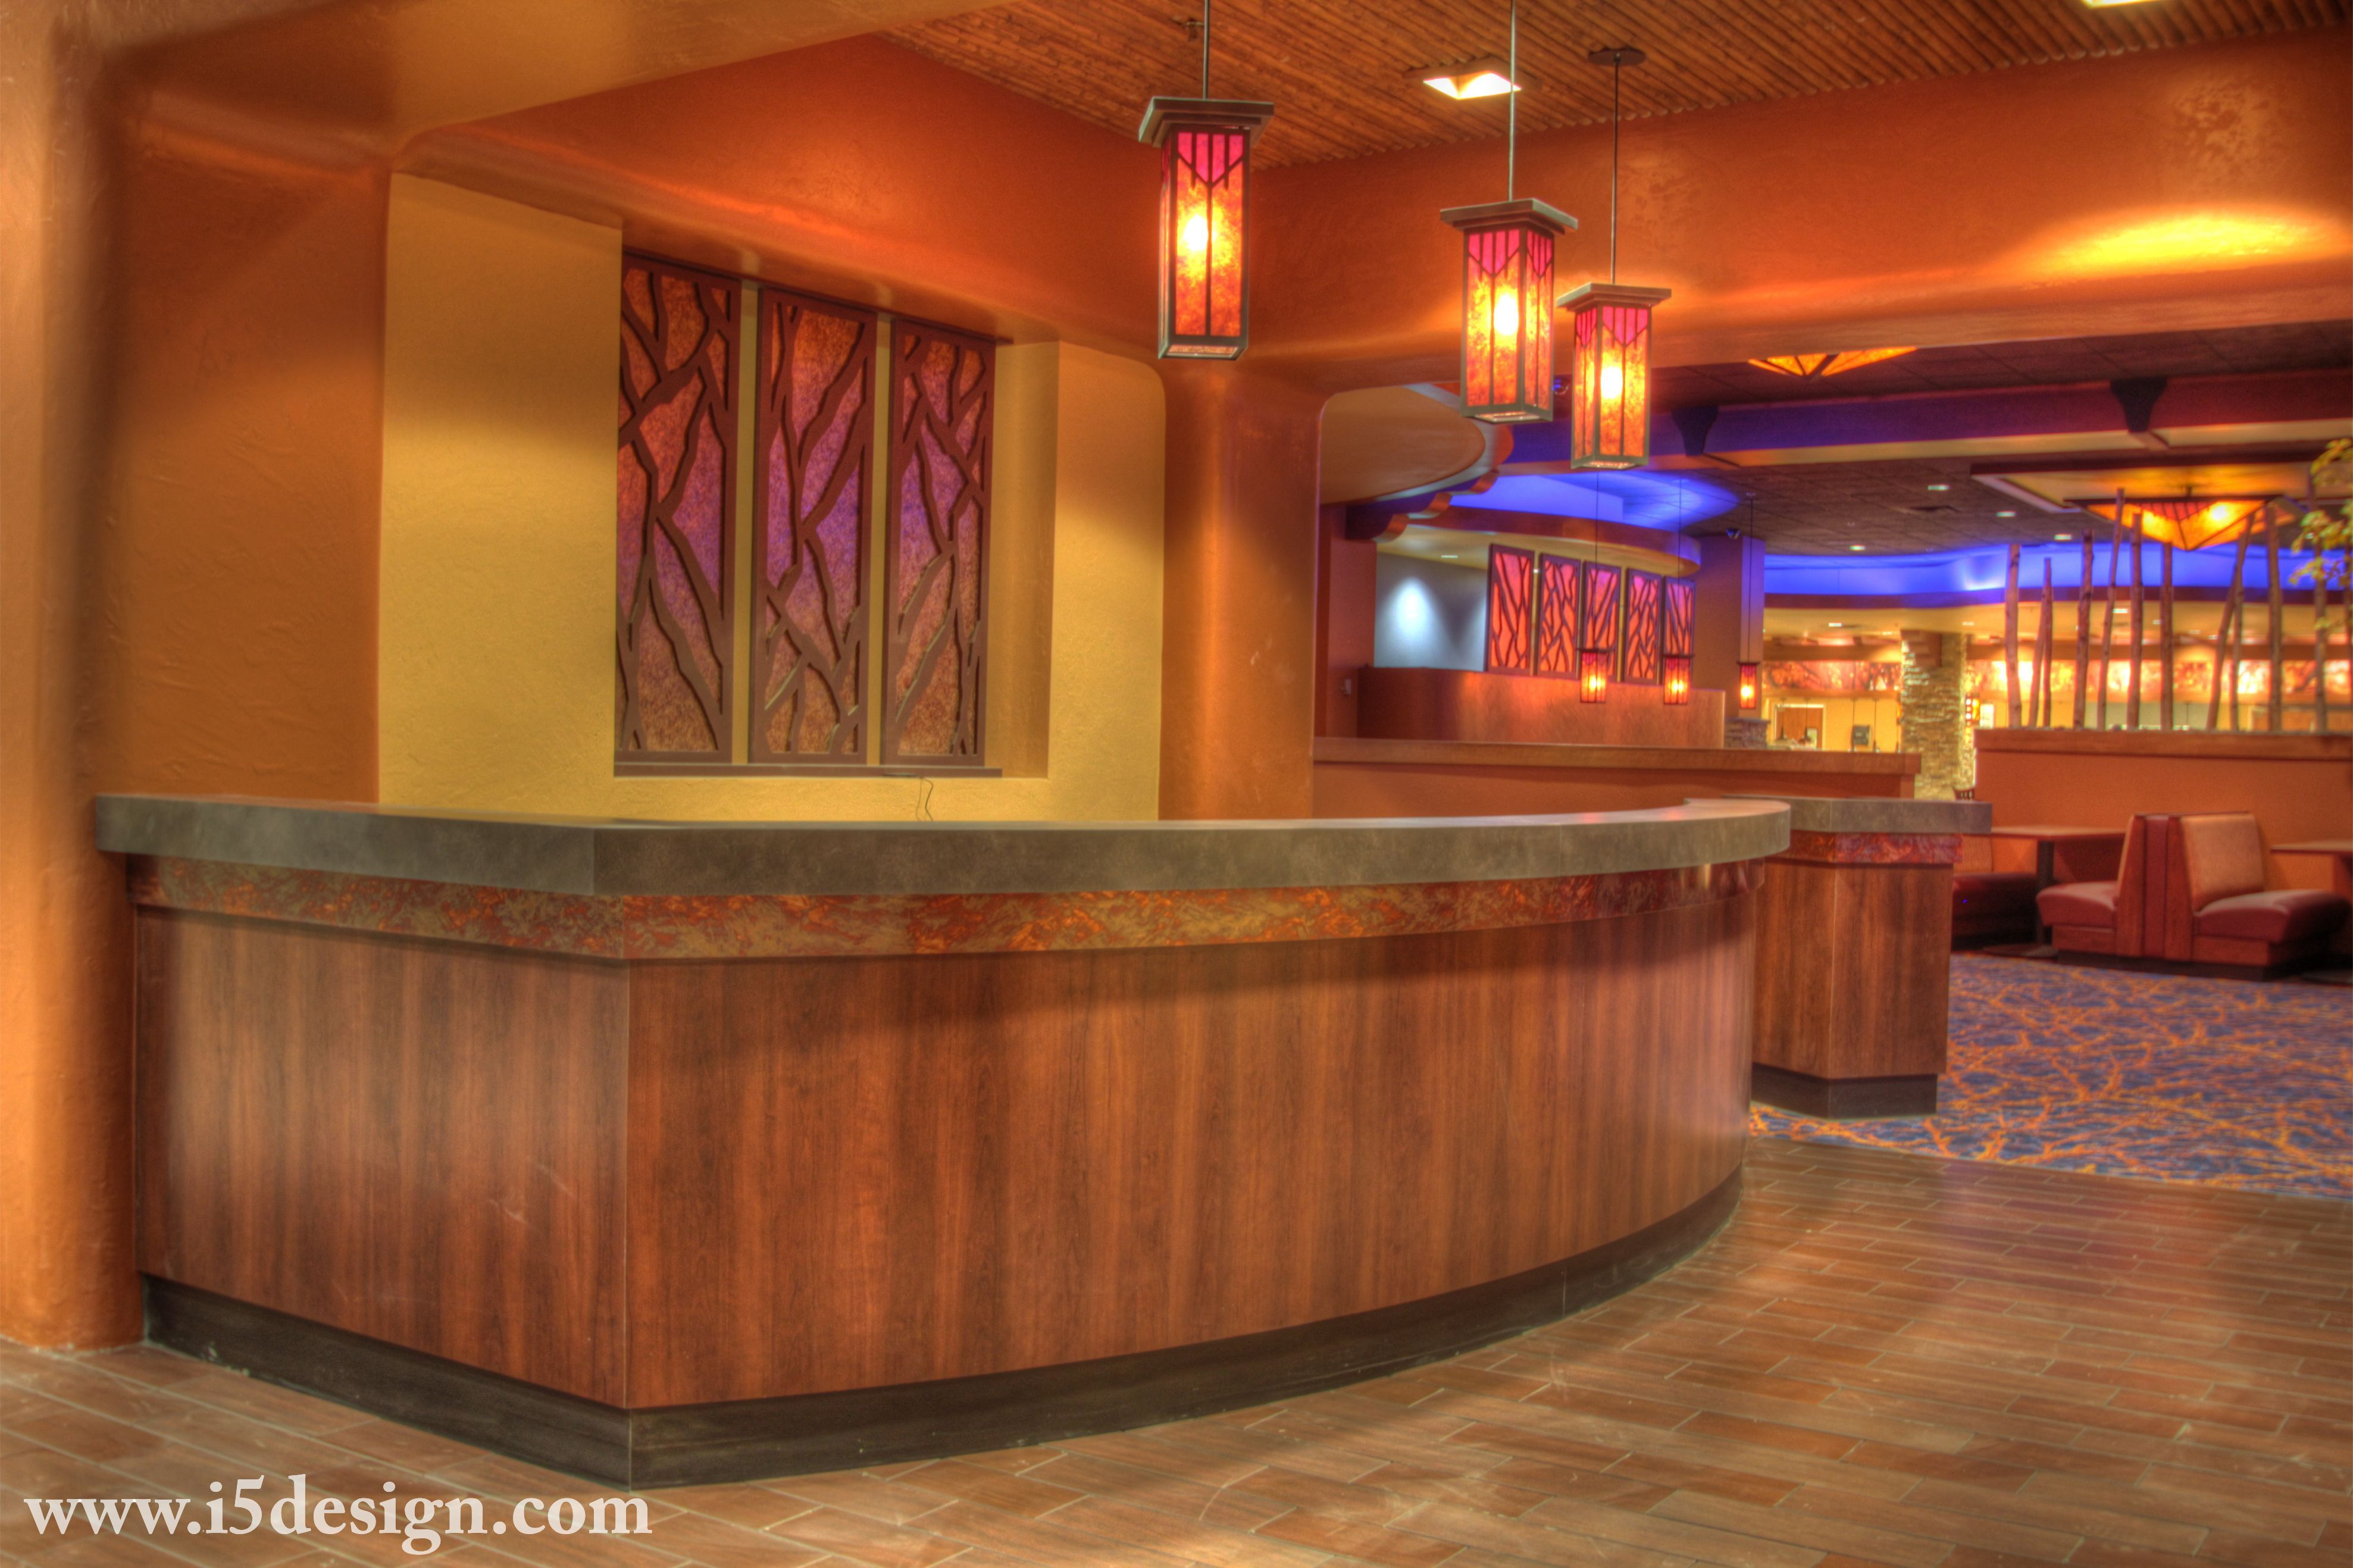 Formica® Laminate 5904 Wild Cherry at Feast Buffet at Santa Ana Star Casino. Architecture & Photography: I-5 Design & Manufacture